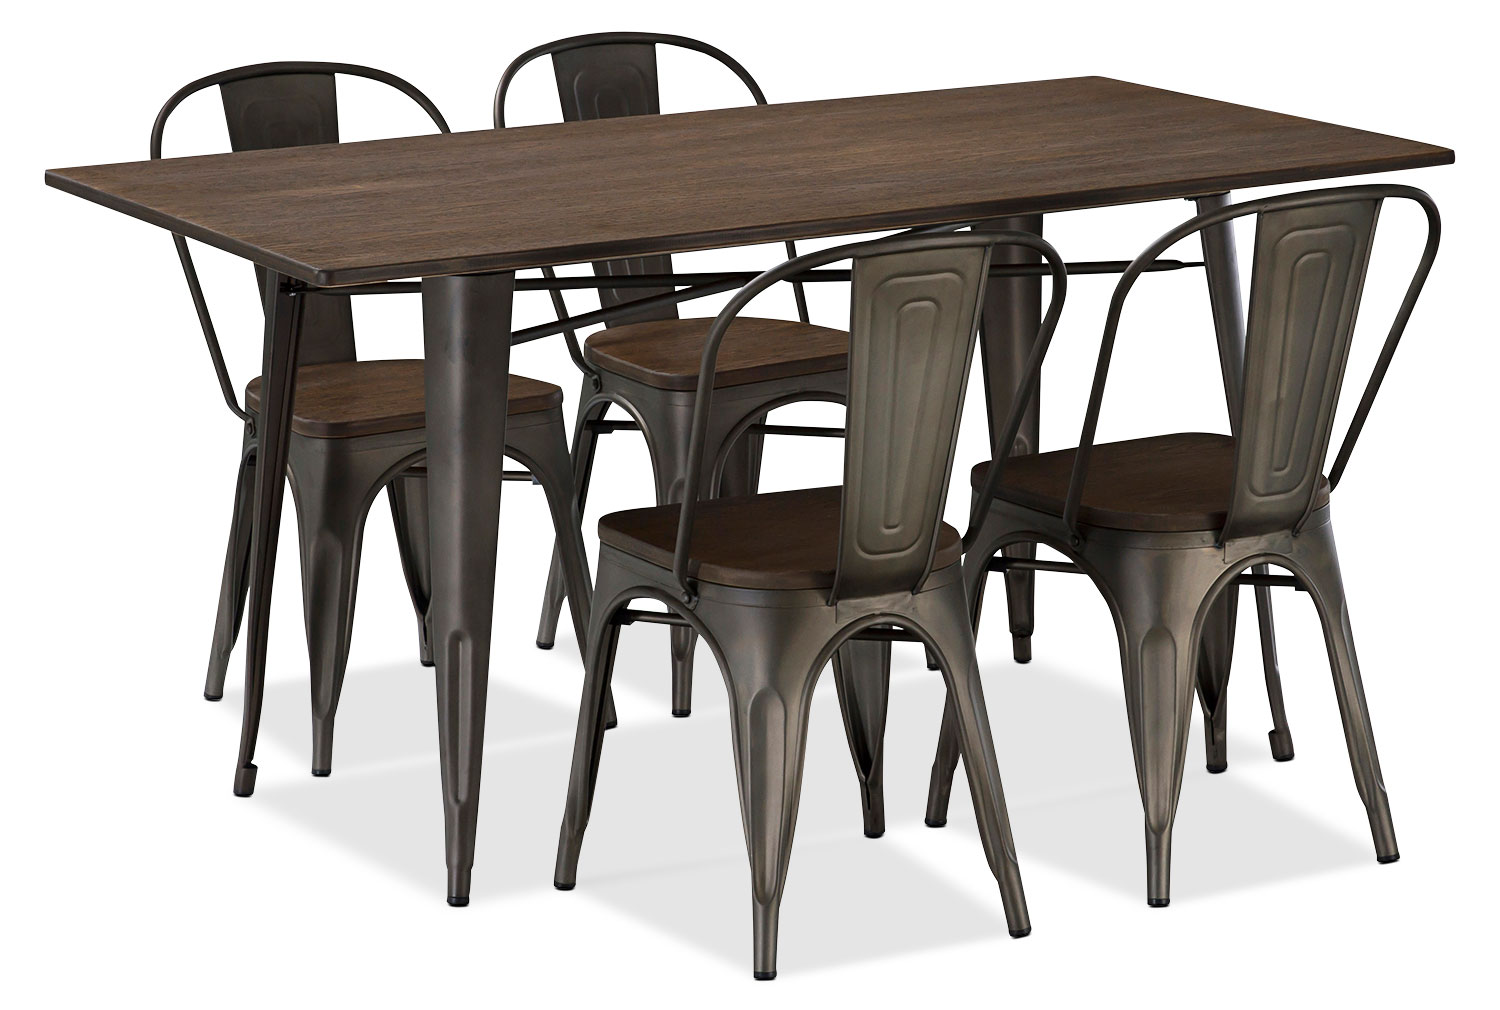 The Peyton Dining Collection